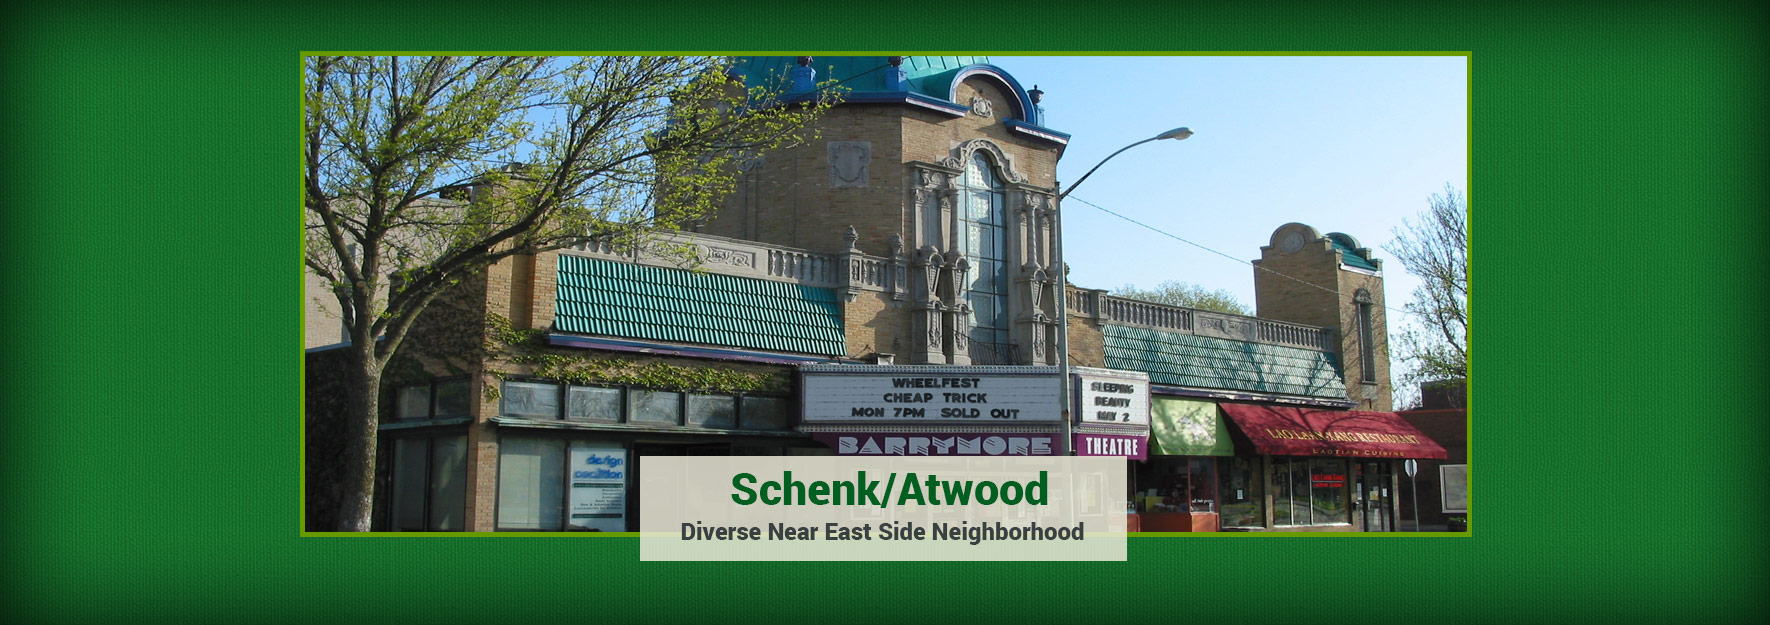 Schenk/Atwood Neighborhood